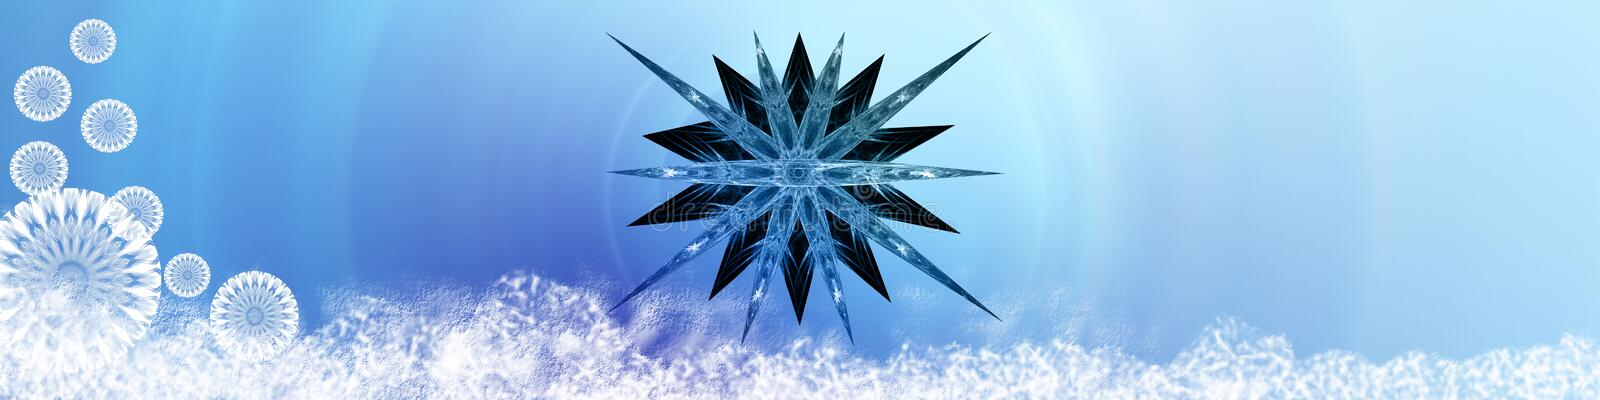 Snow, star and snowflakes. Blue banner / header with snow decorative snowflakes and a big star stock illustration